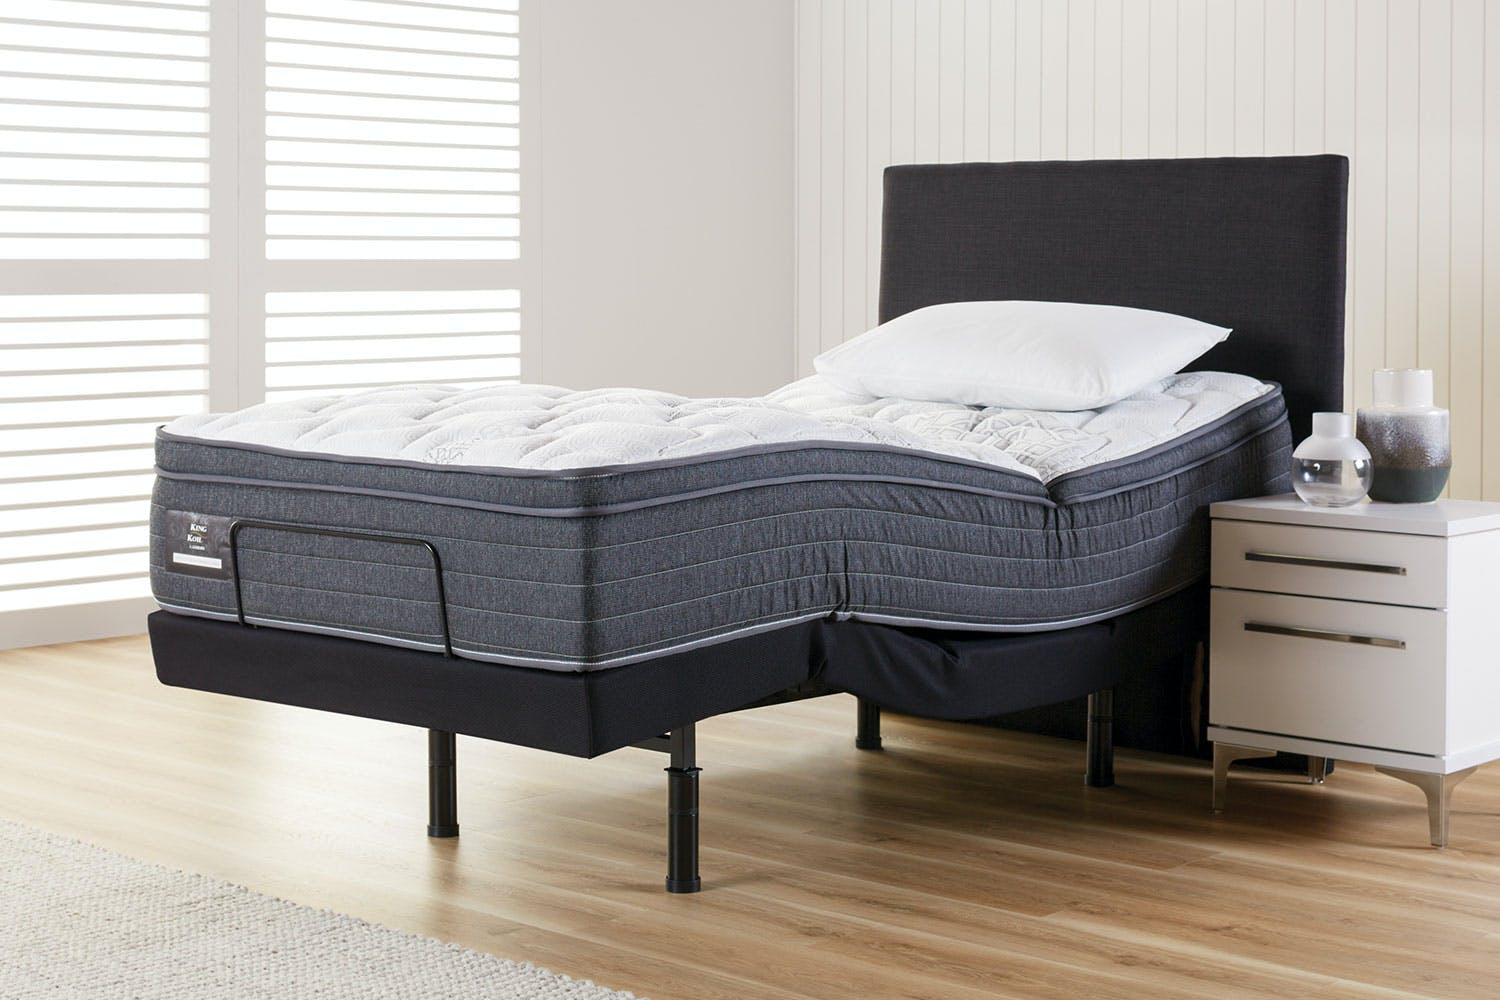 King Koil Conforma Deluxe Medium King Single Mattress with Enhance Adjustable Base by AH Beard